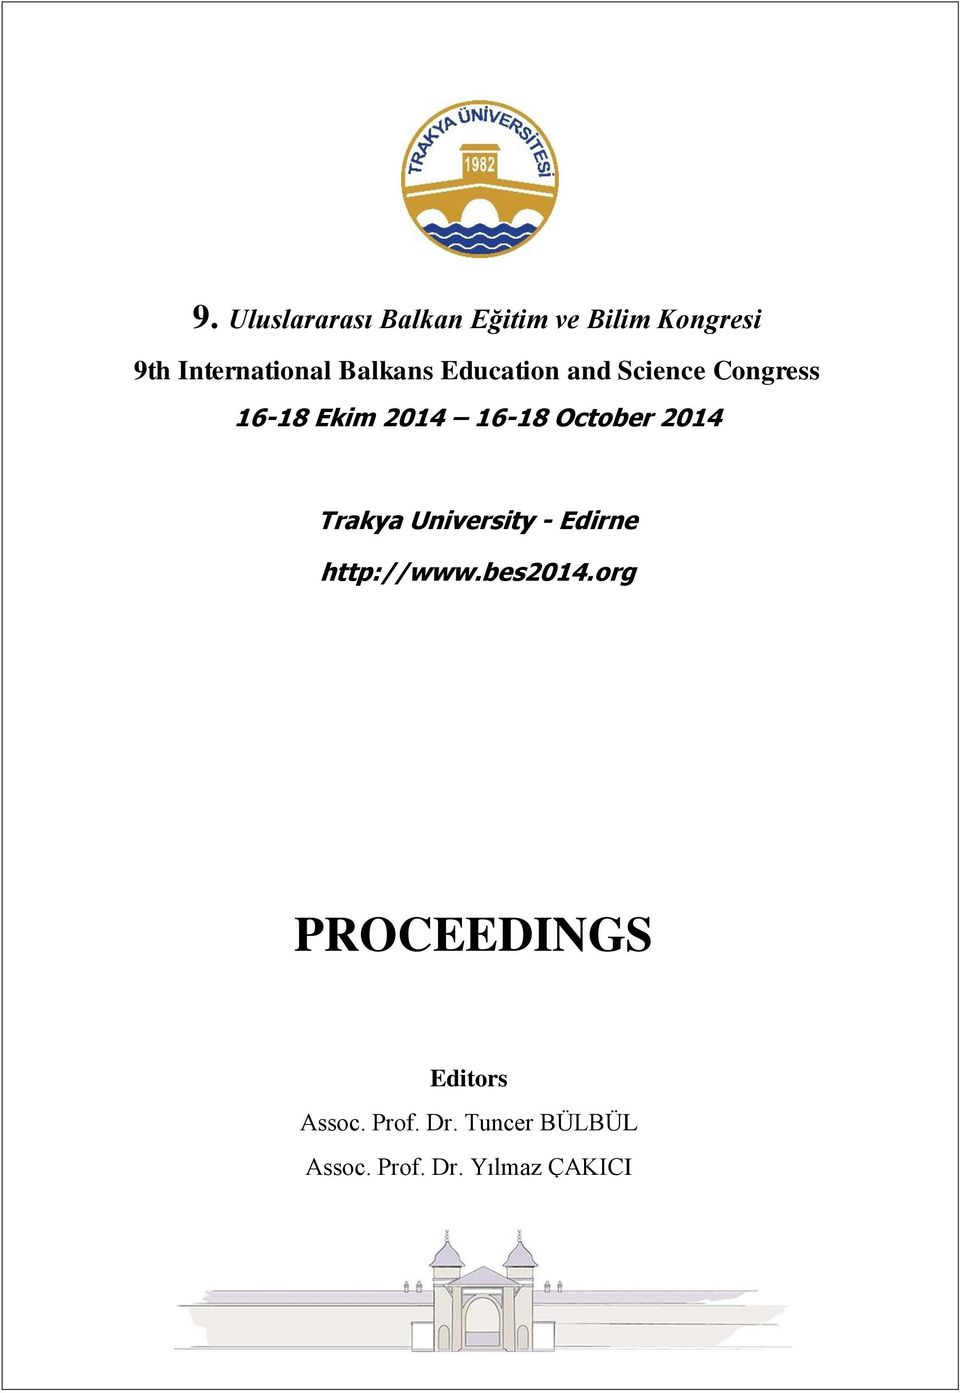 October 2014 Trakya University - Edirne http://www.bes2014.